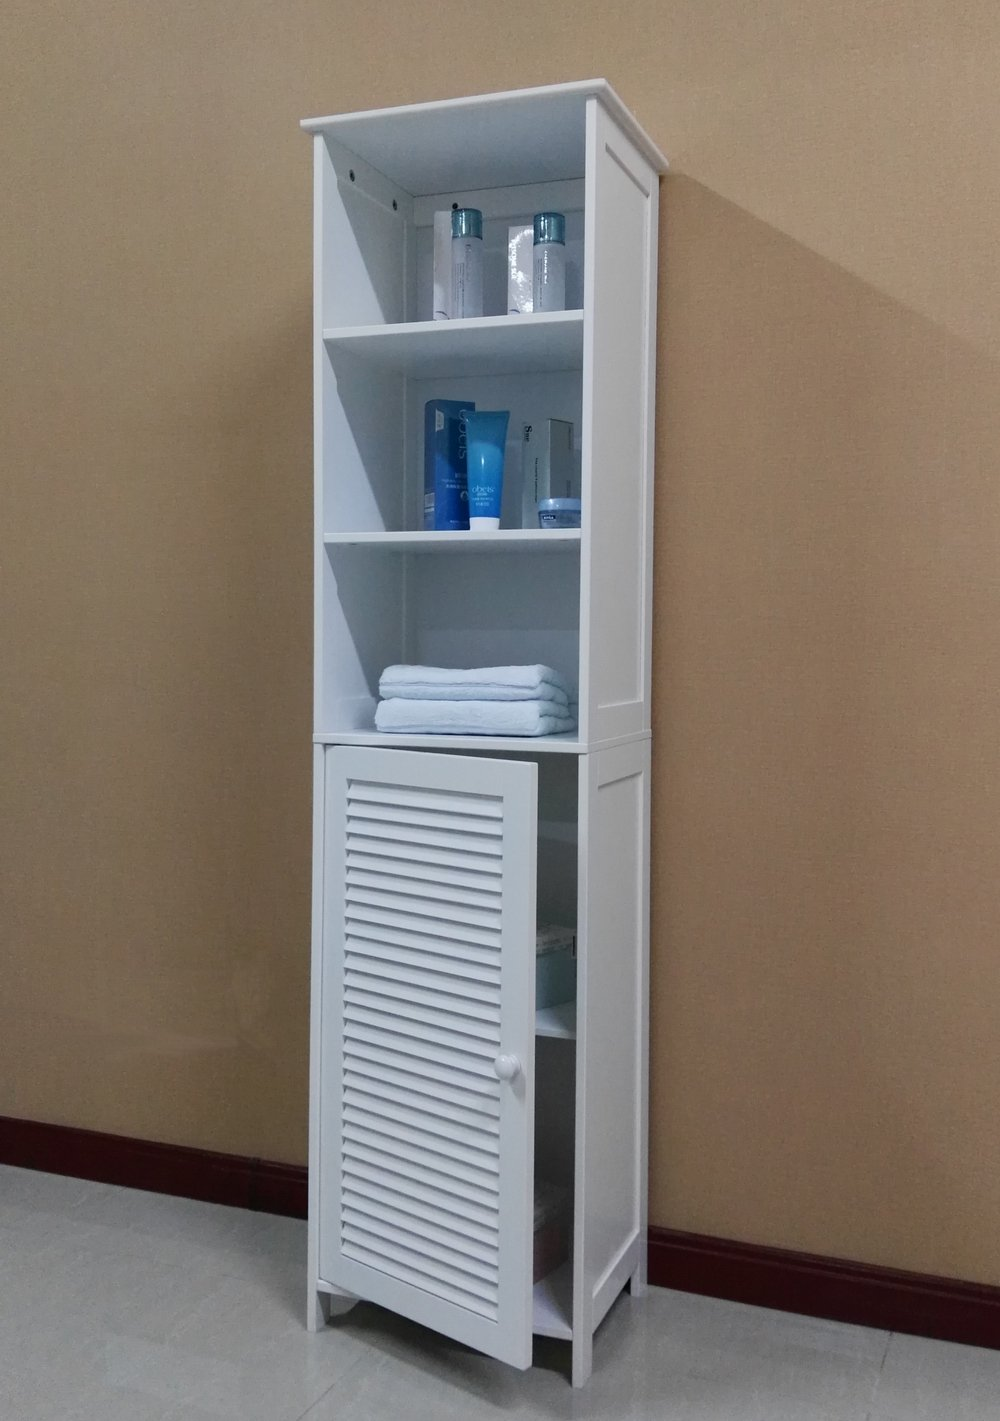 Elegant Made Of Durable Painted MDF And Wood Composite This Cabinet With Its 5  Storage Shelves Will Hold A Substantial Amount Of Bathroom ...